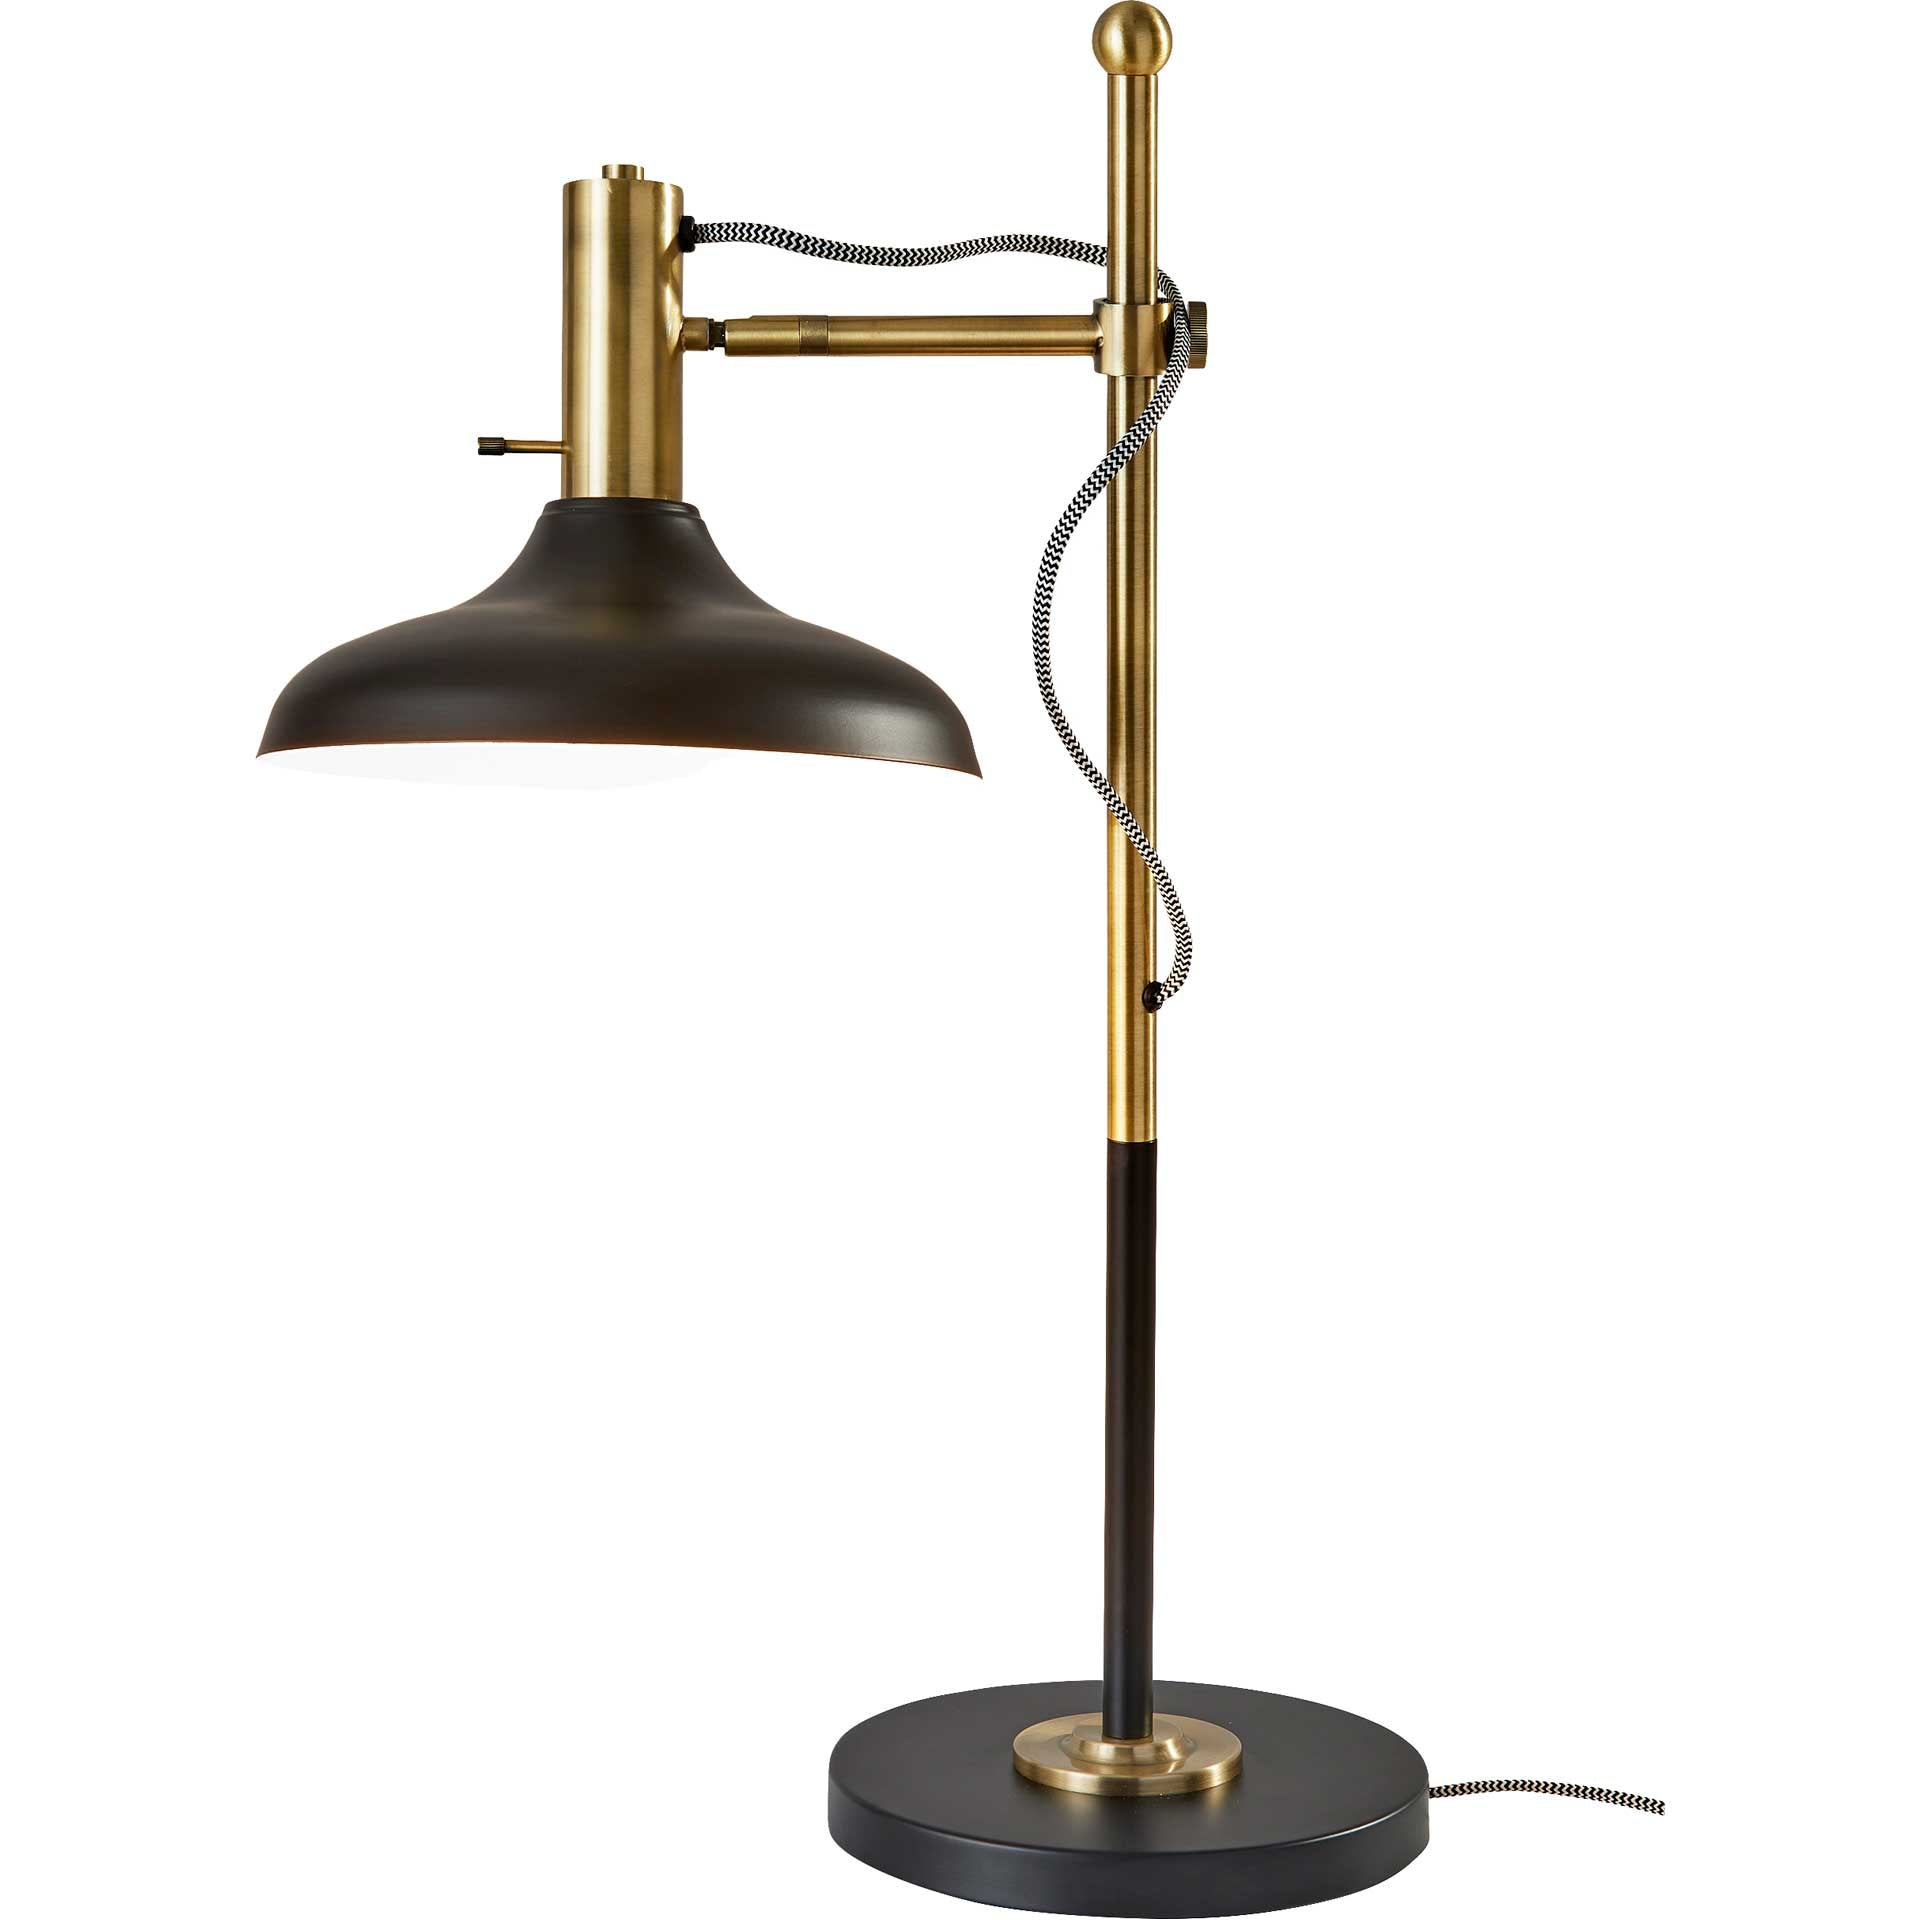 Keith Desk Lamp Black/Antique Brass